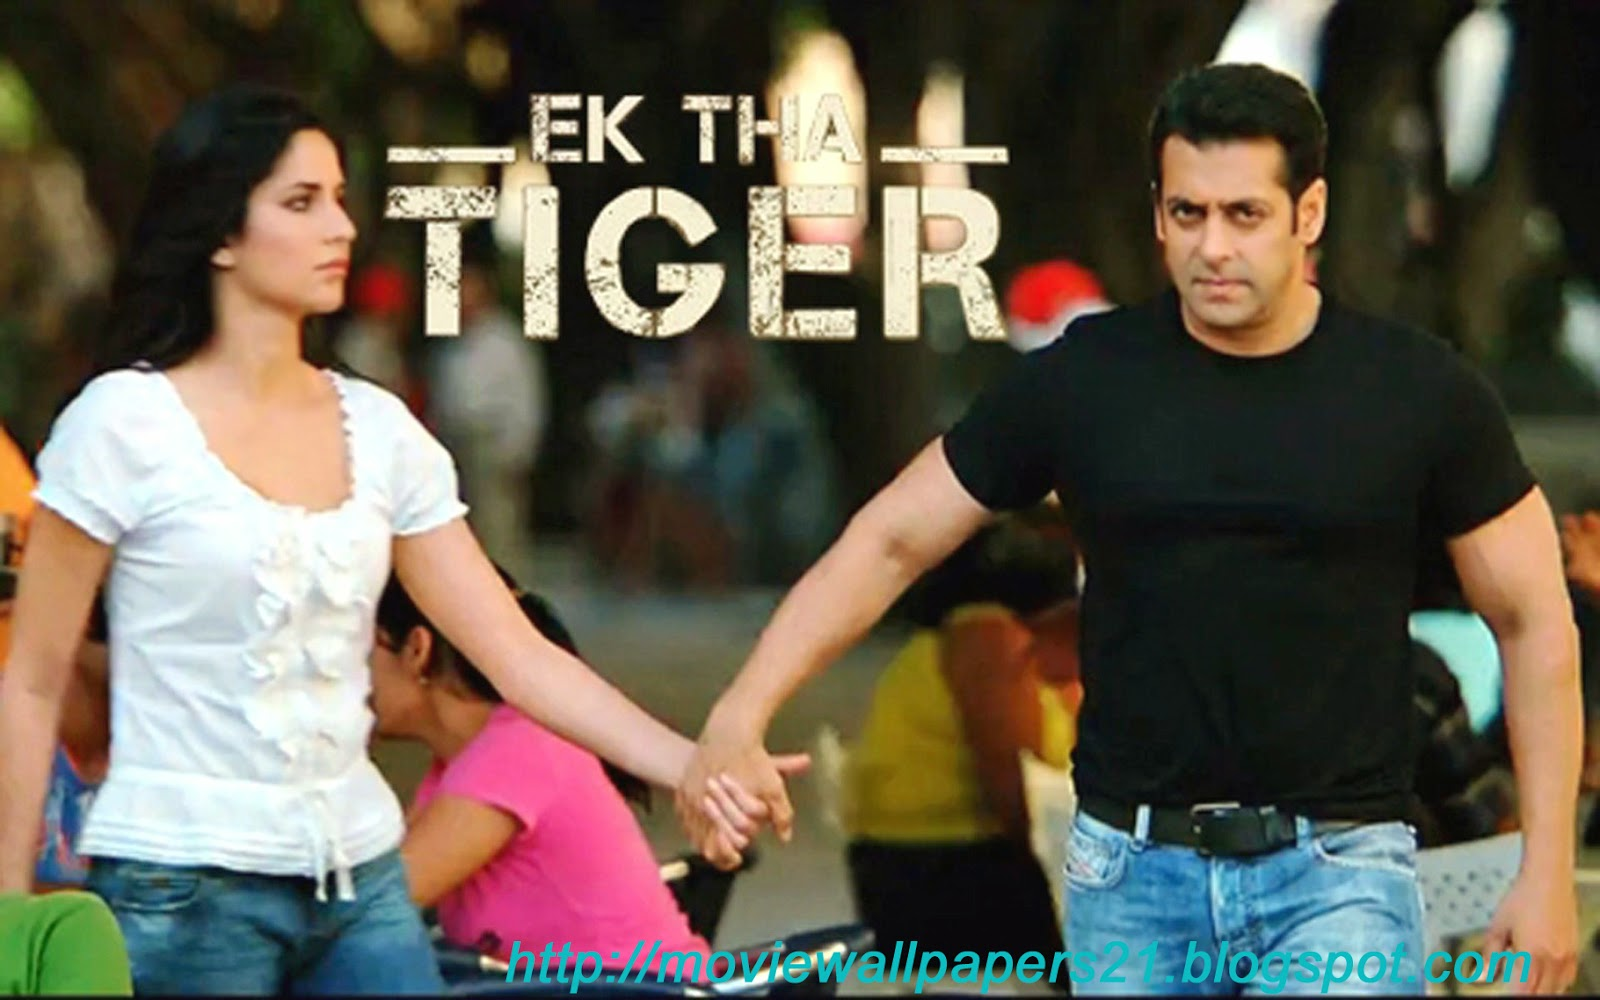 Salman Khan And Katrina Kaif In Ek Tha Tiger: Online Movies Wallpapers: Salman And Katrina Ek Tha Tiger